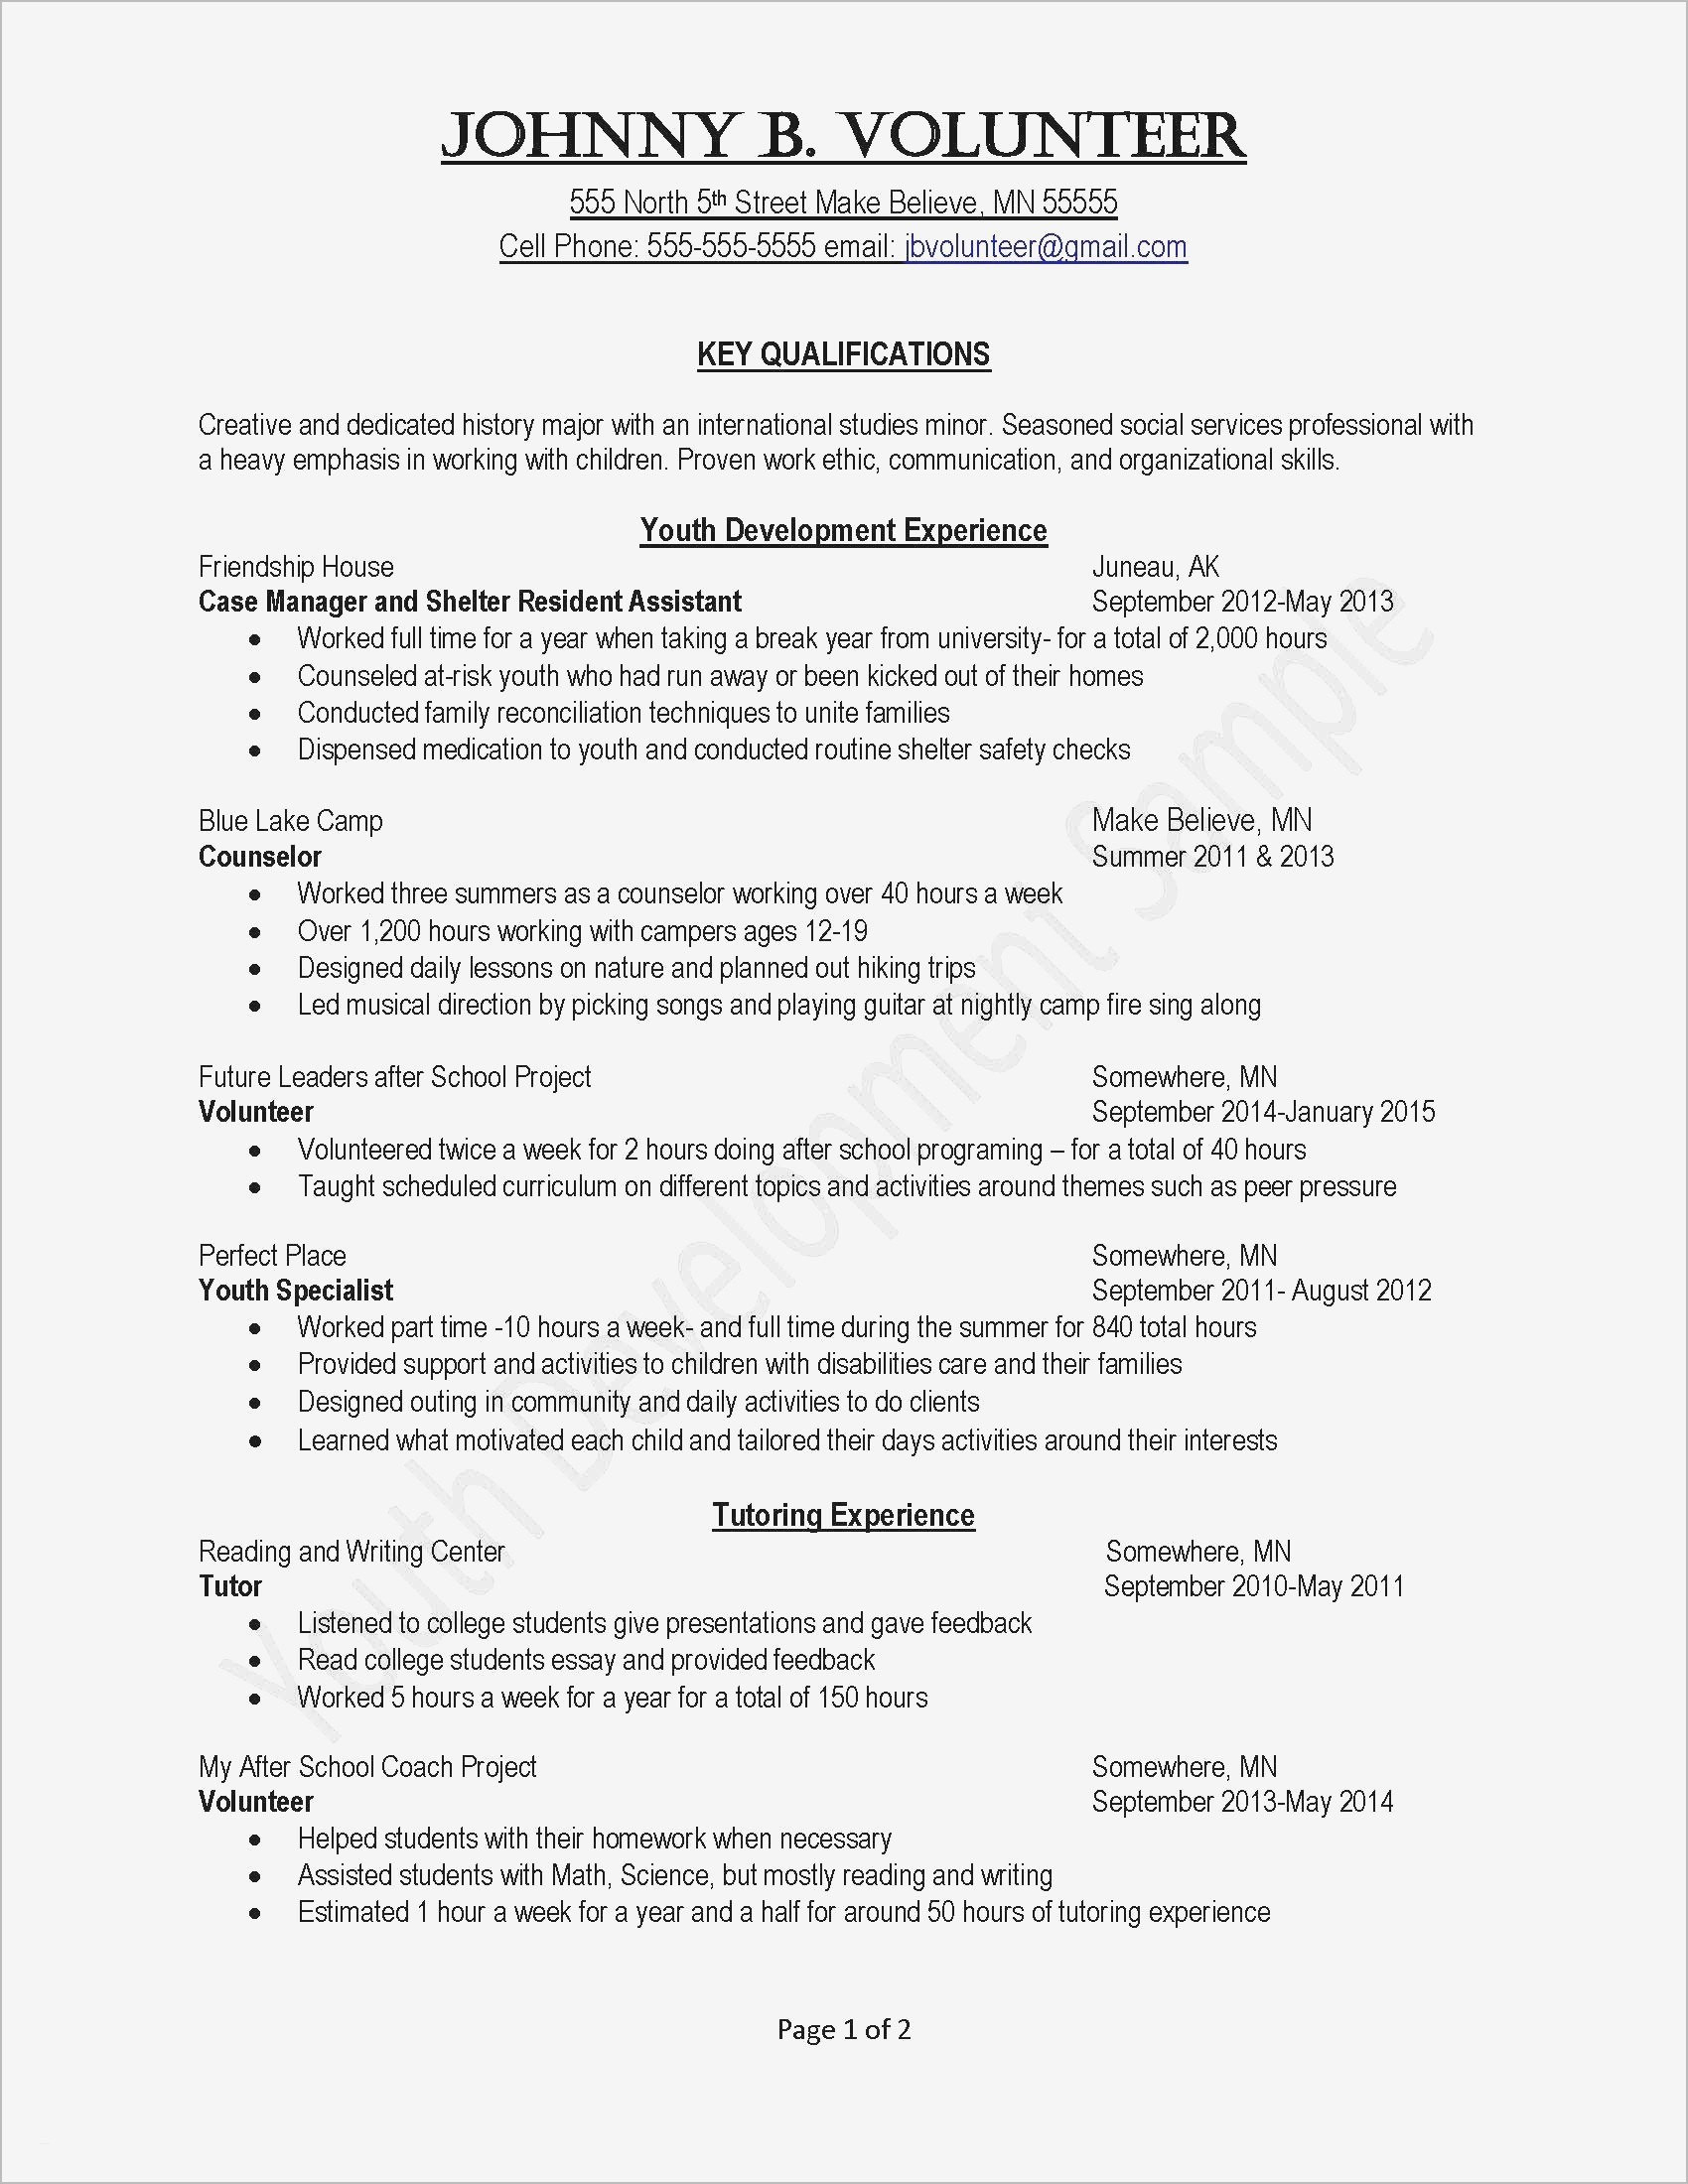 Cover Letter Template Pdf Free - Professional Resume Cover Letter Template Best Perfect Professional